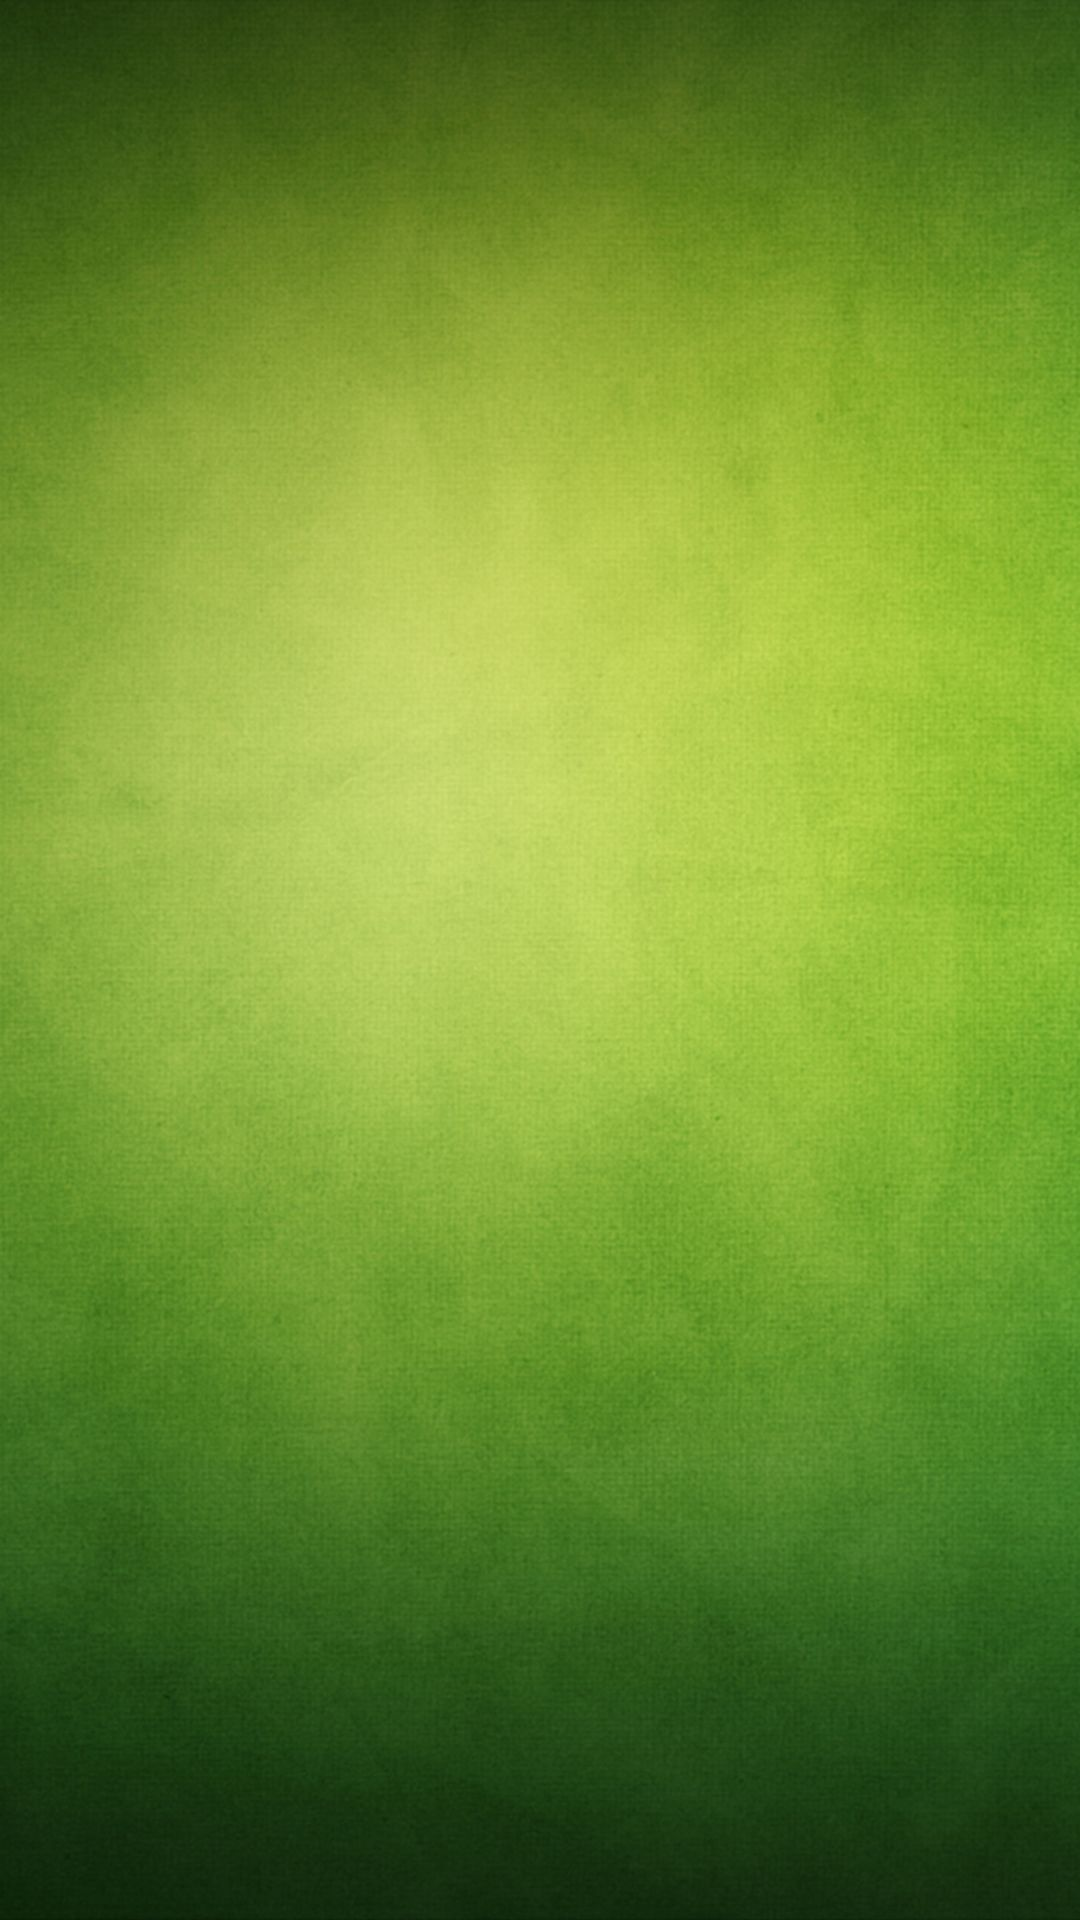 Pure Minimal Simple Green Background Iphone 8 Wallpapers With